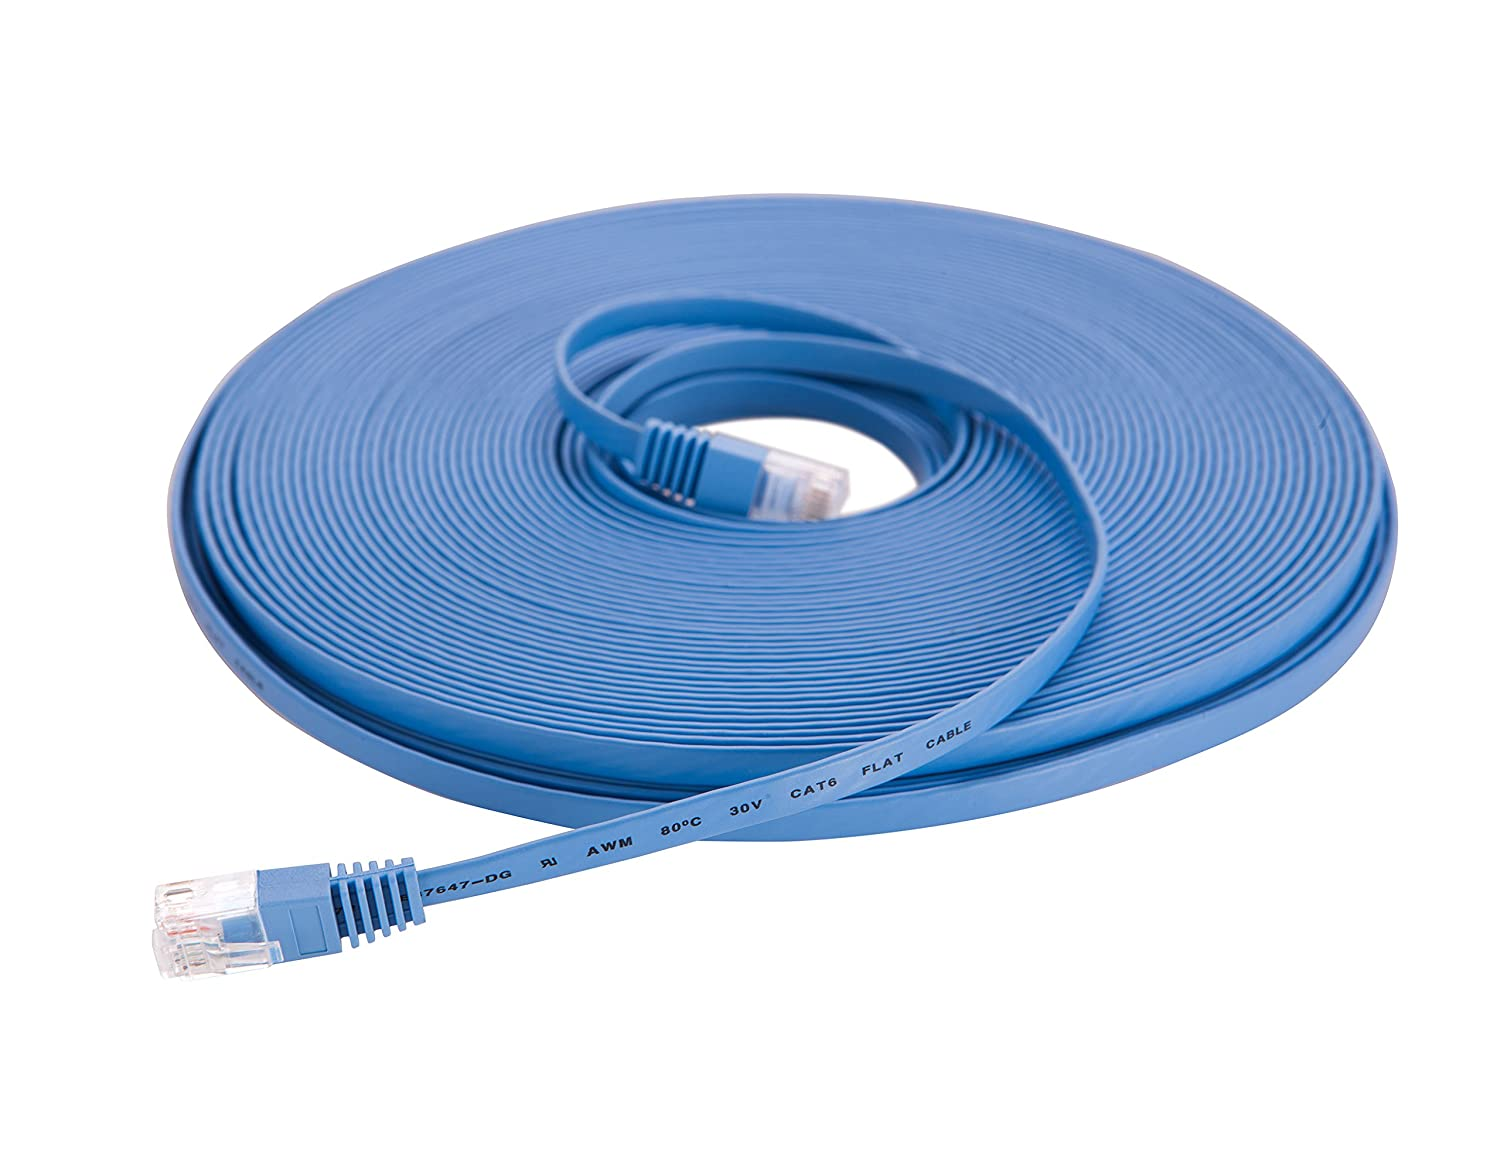 Amazon.com: Pan-International P173A-17 Cat6 UTP Ethernet Cable 100ft ...